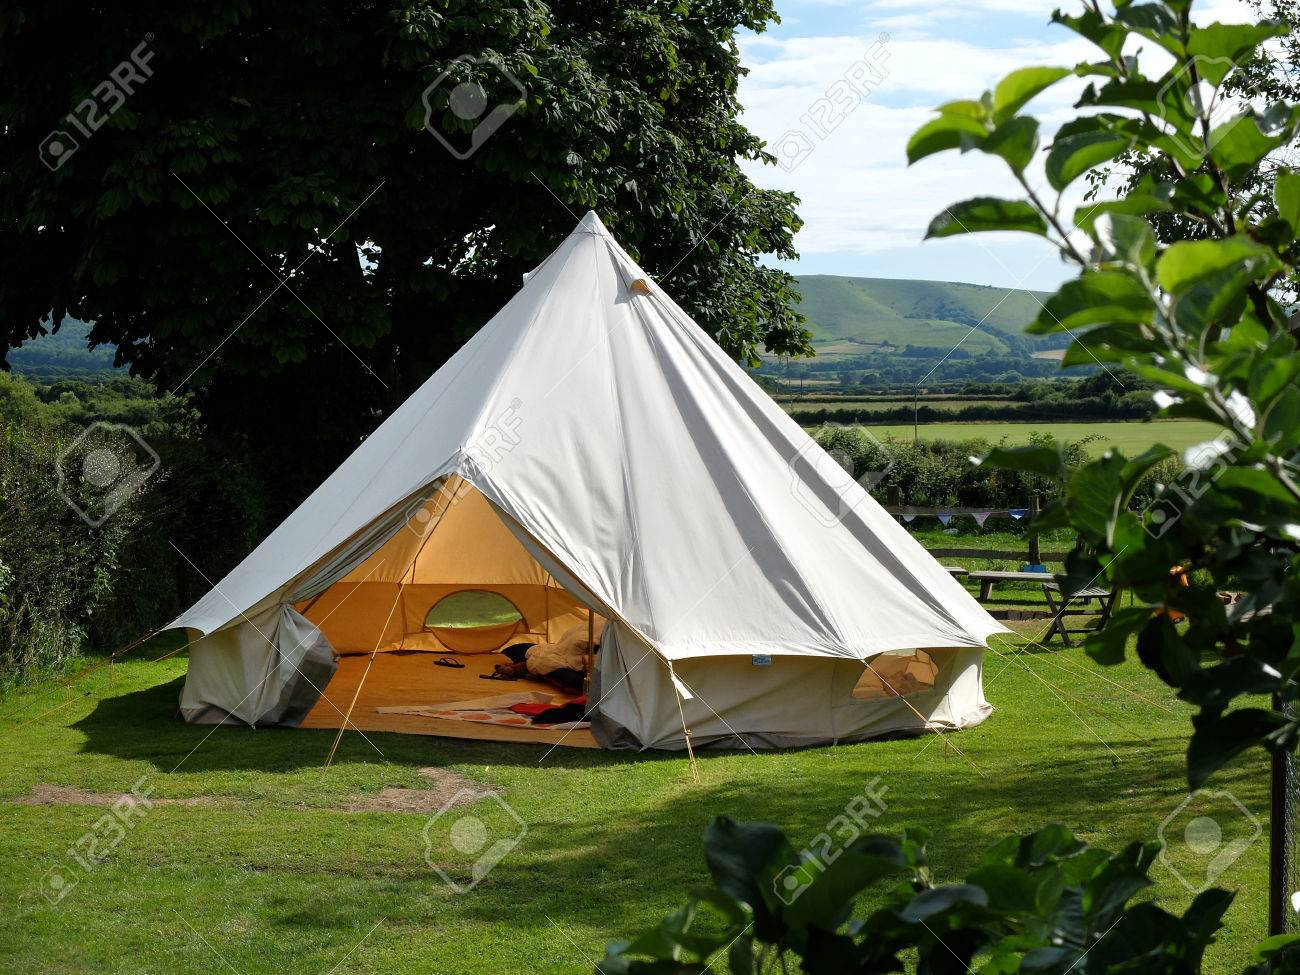 Traditional canvas bell tent in english countryside Stock Photo - 61041856 & Traditional Canvas Bell Tent In English Countryside Stock Photo ...